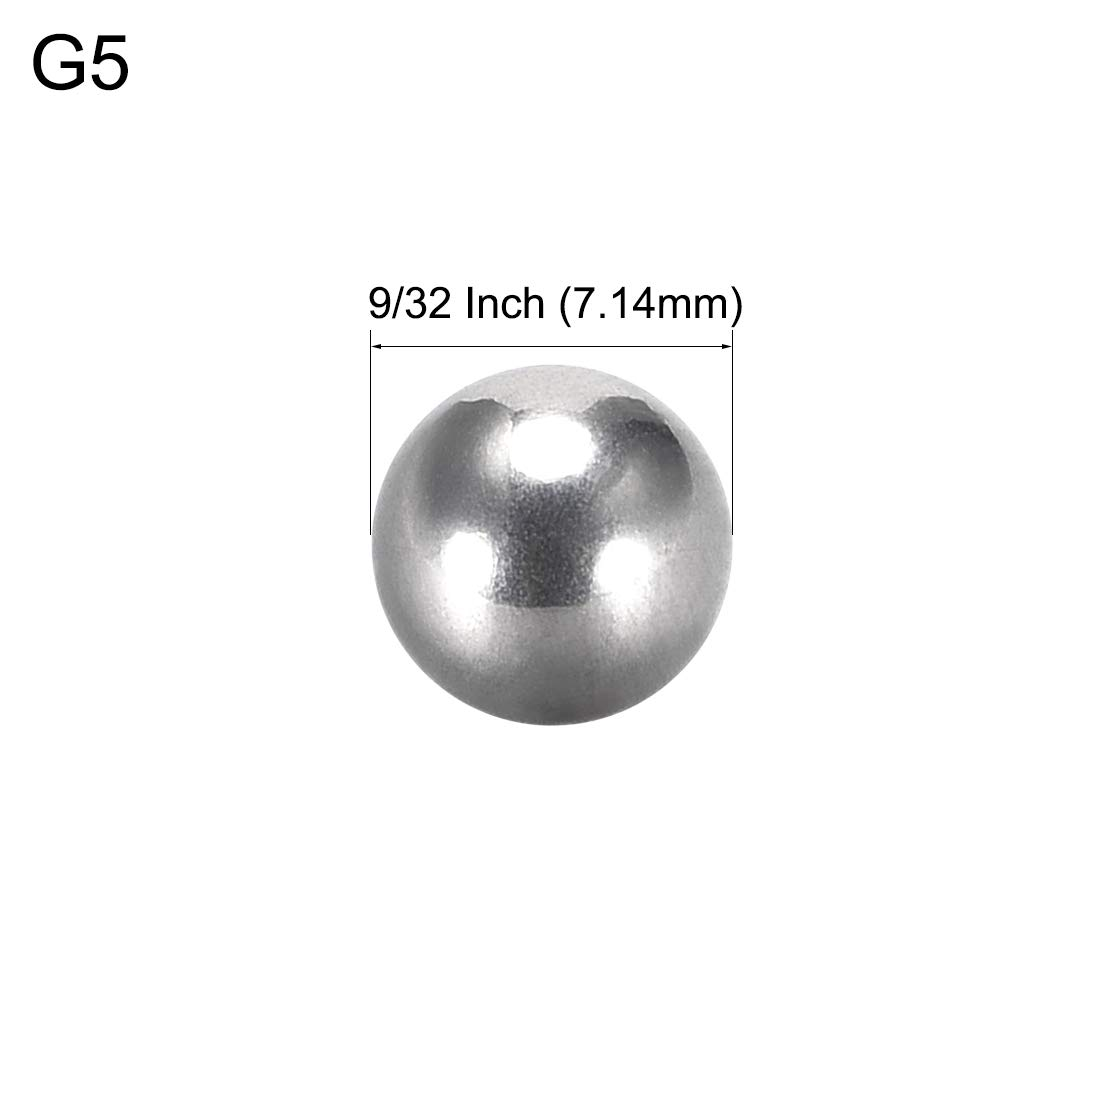 uxcell Precision 304 Stainless Steel Bearing Balls 9//32 Inch 7.14mm G5 10pcs